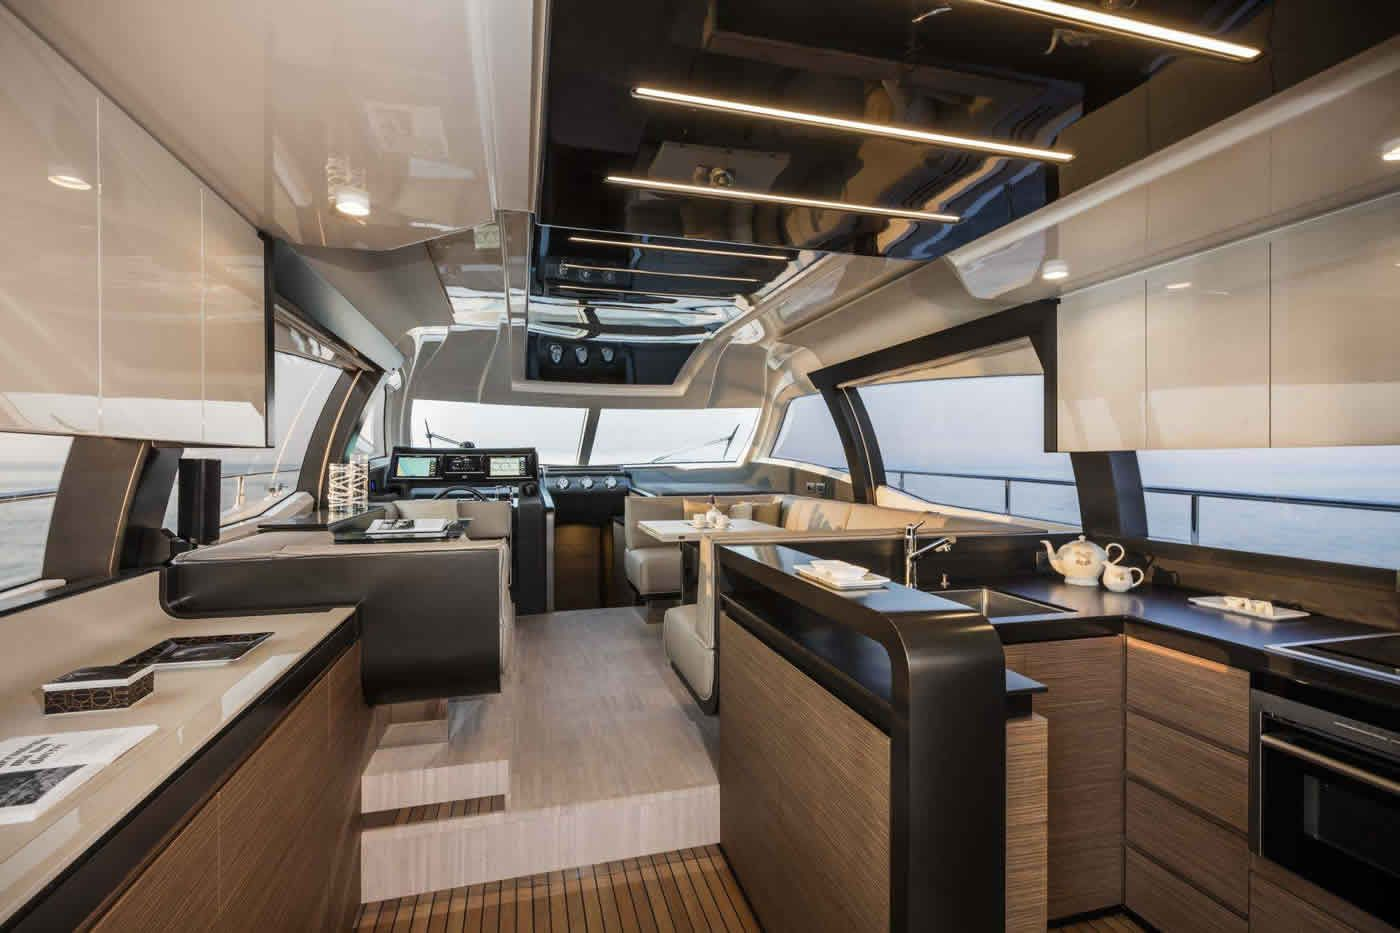 #Yachting #Interiors #Design: experience the style and elegance of the #MadeInItaly penned by the #FerrettiGroup designers. Interiors Ferretti Yachts 550 New, main deck.